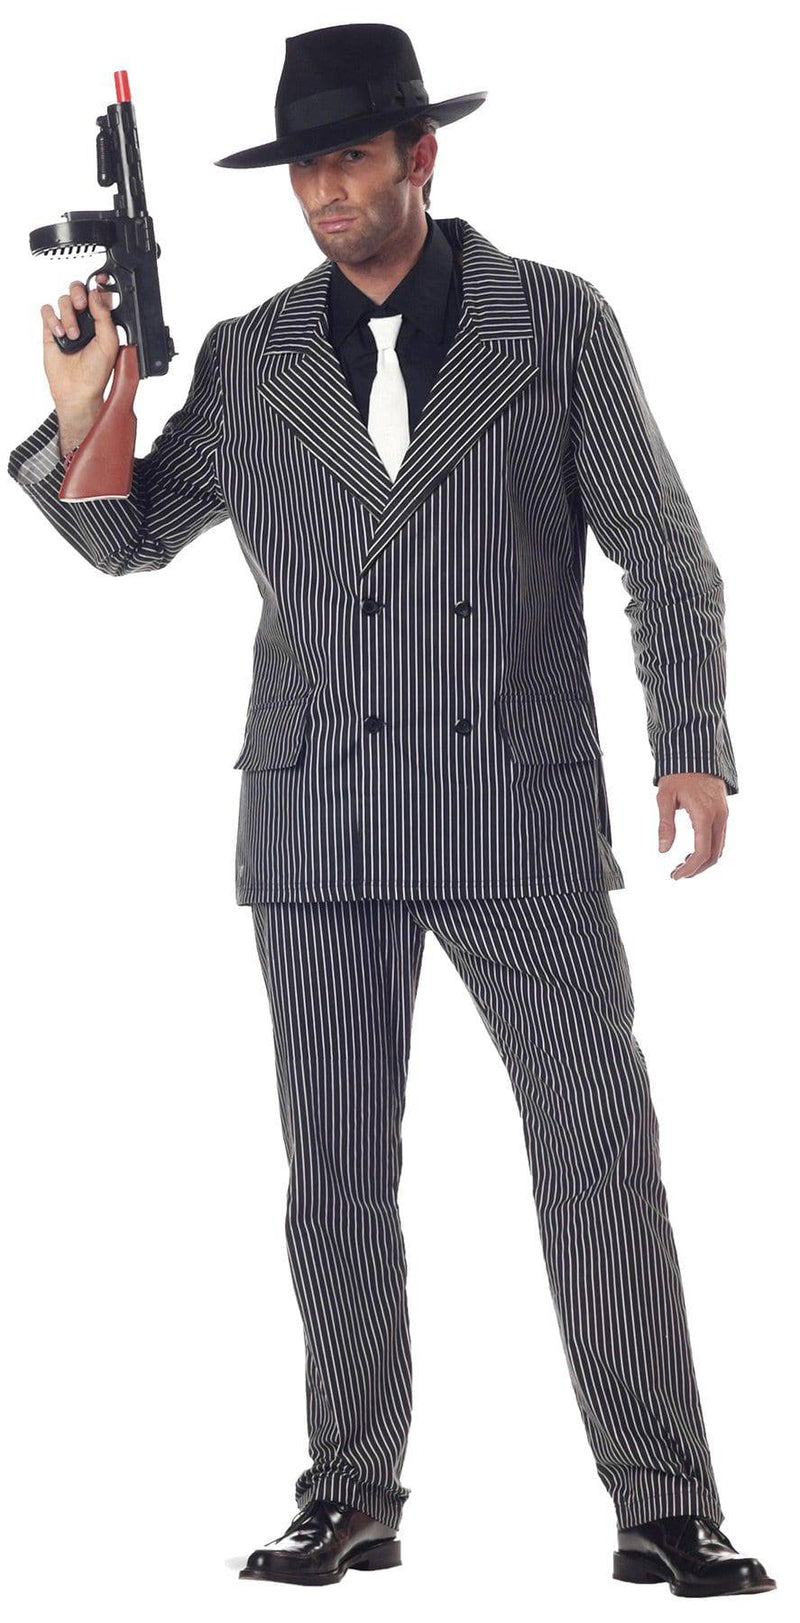 California Costumes Men's Gangster Theme Movie Party Costume - Costume Arena